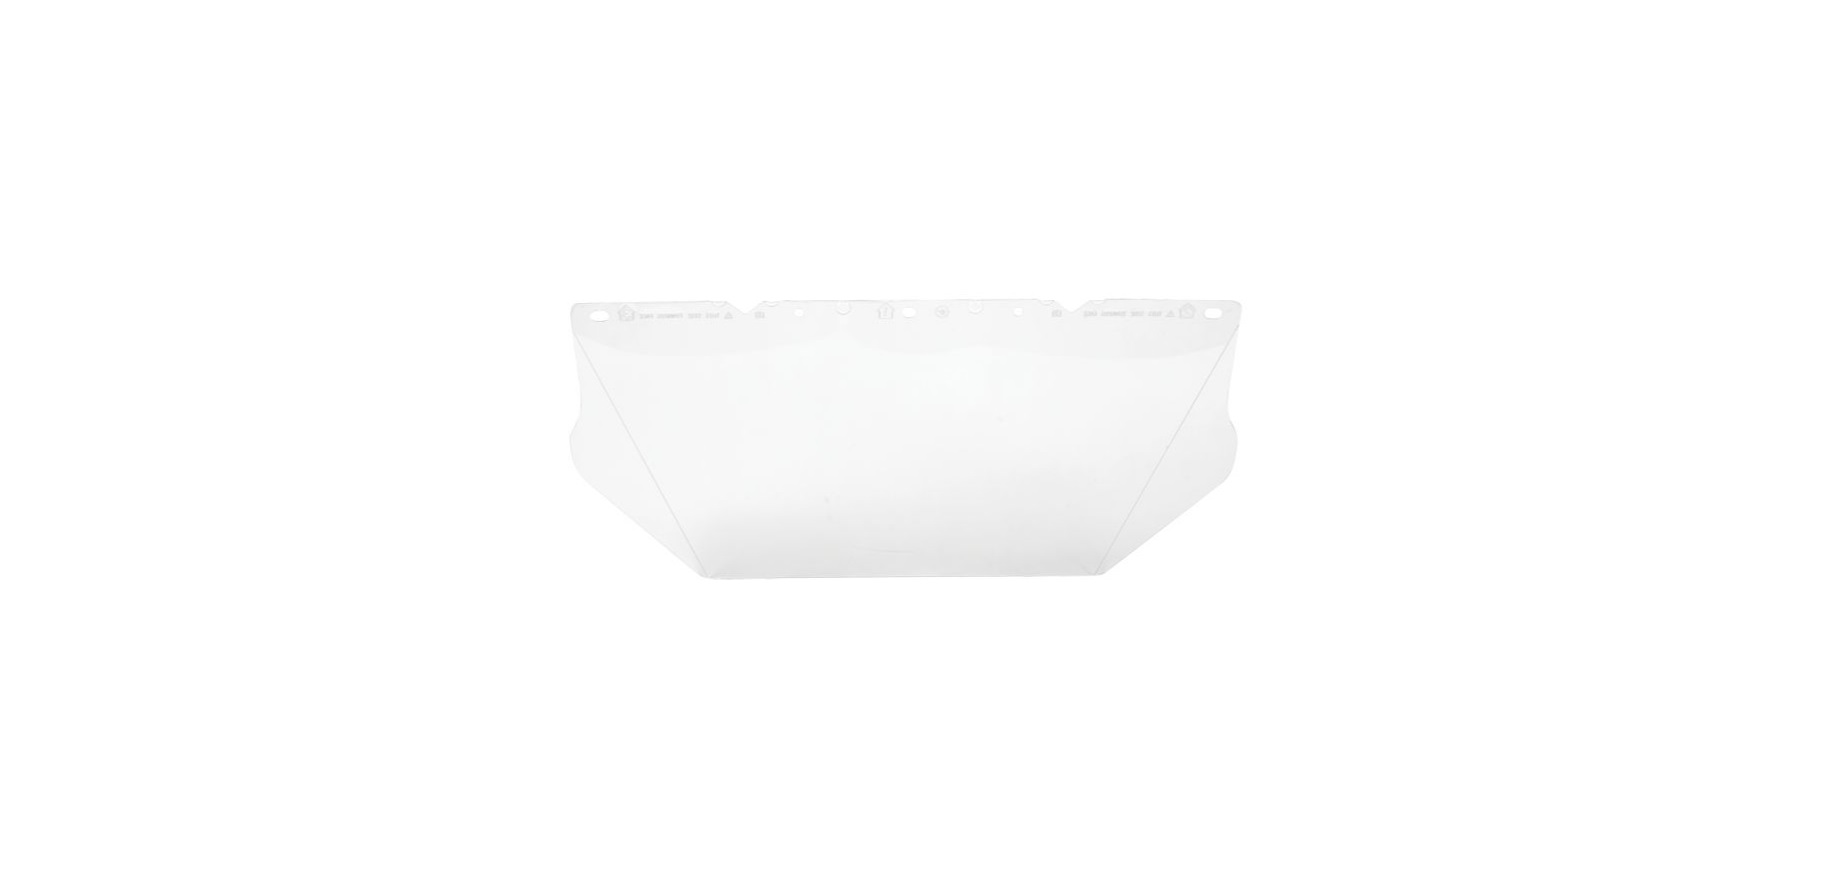 V-Gard® 10115836 Contoured Faceshield Visor, Clear, Polycarbonate, 8 in H x 17 in W x 0.04 in THK Visor, For Use With V-Gard® Frames and Headgears, Specifications Met: ANSI/ISEA Z87.1-2010, CSA Z94.3, EN 166 (2C-1.2 MSA 1B), AS/NZS 1337